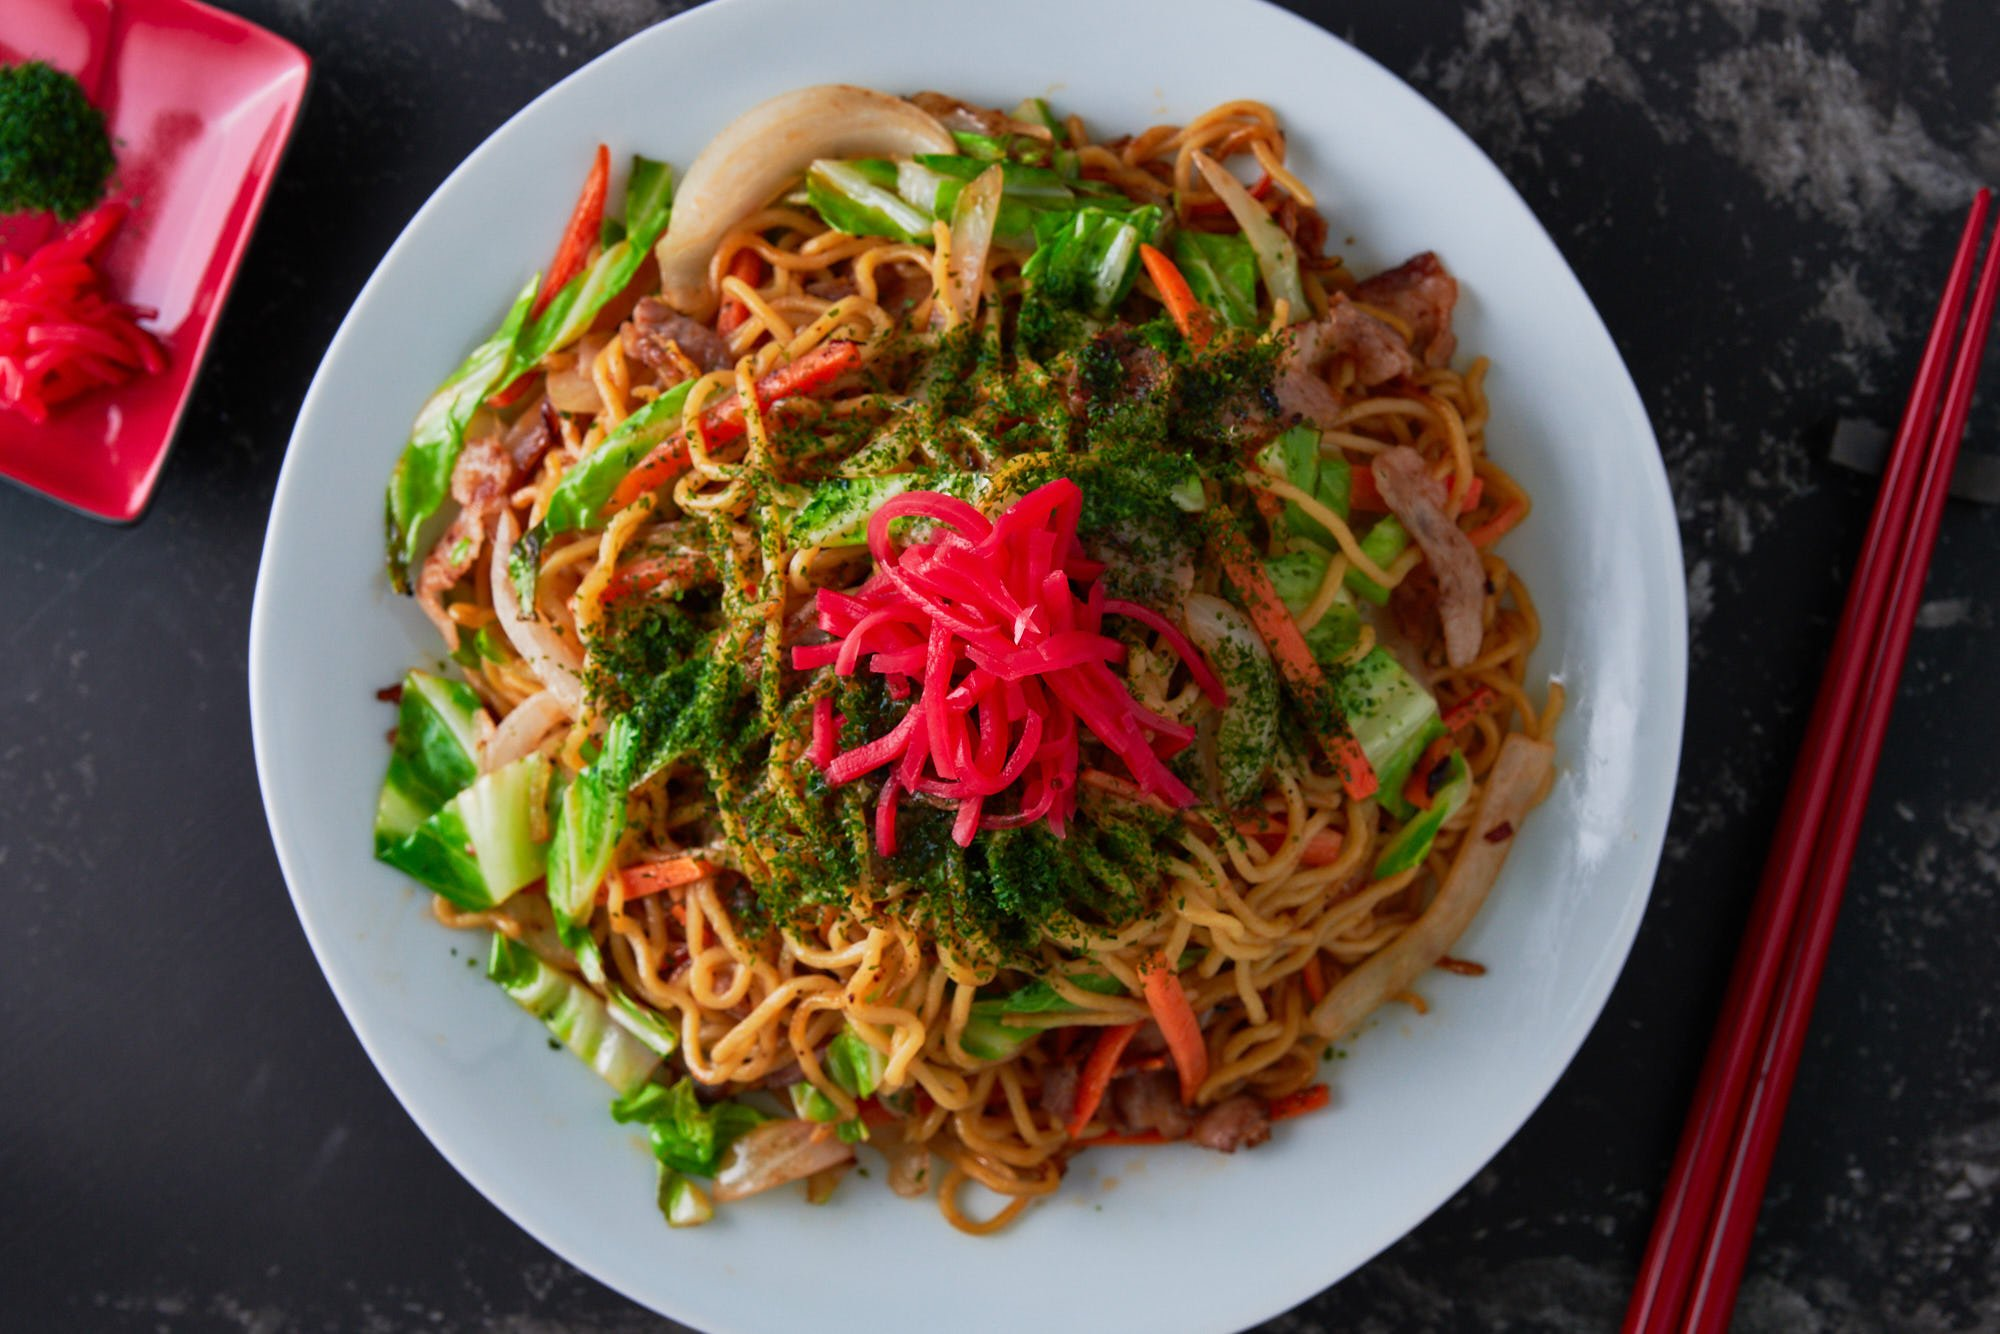 One of the most popular steet foods in Japan, Yakisoba is an easy delicious stir-fry that comes together in minutes.